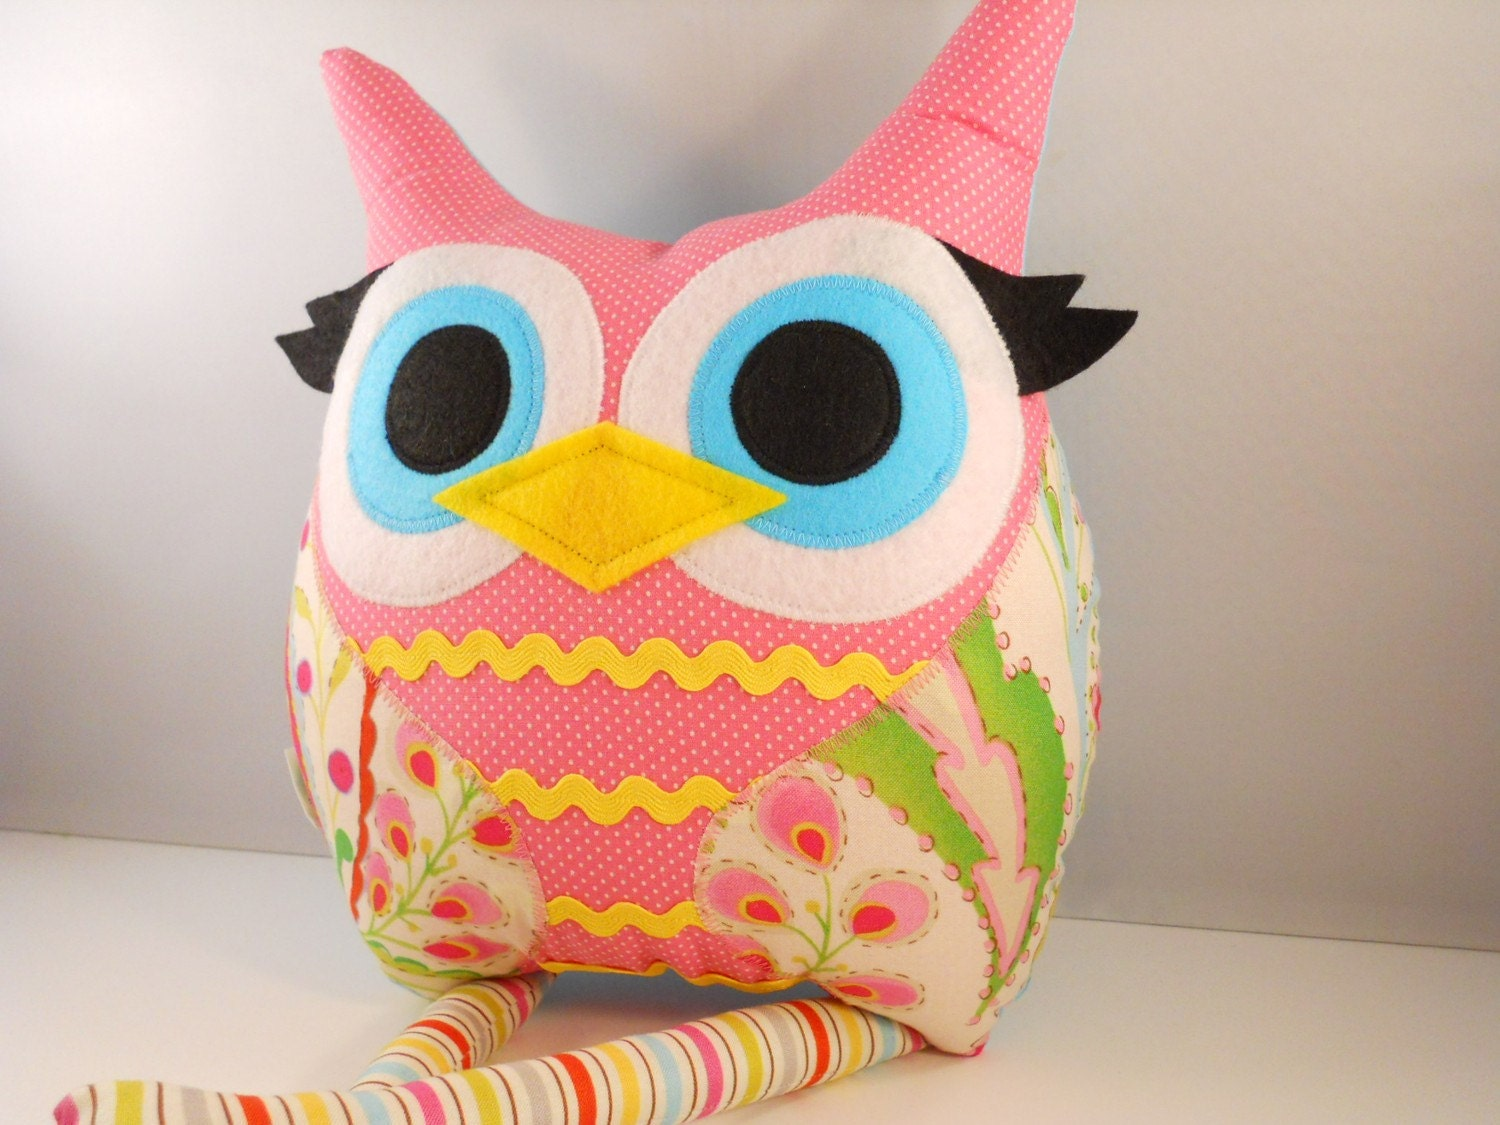 Handmade Owl Pillow Plush Stuffed Toy Christmas By Karensagez